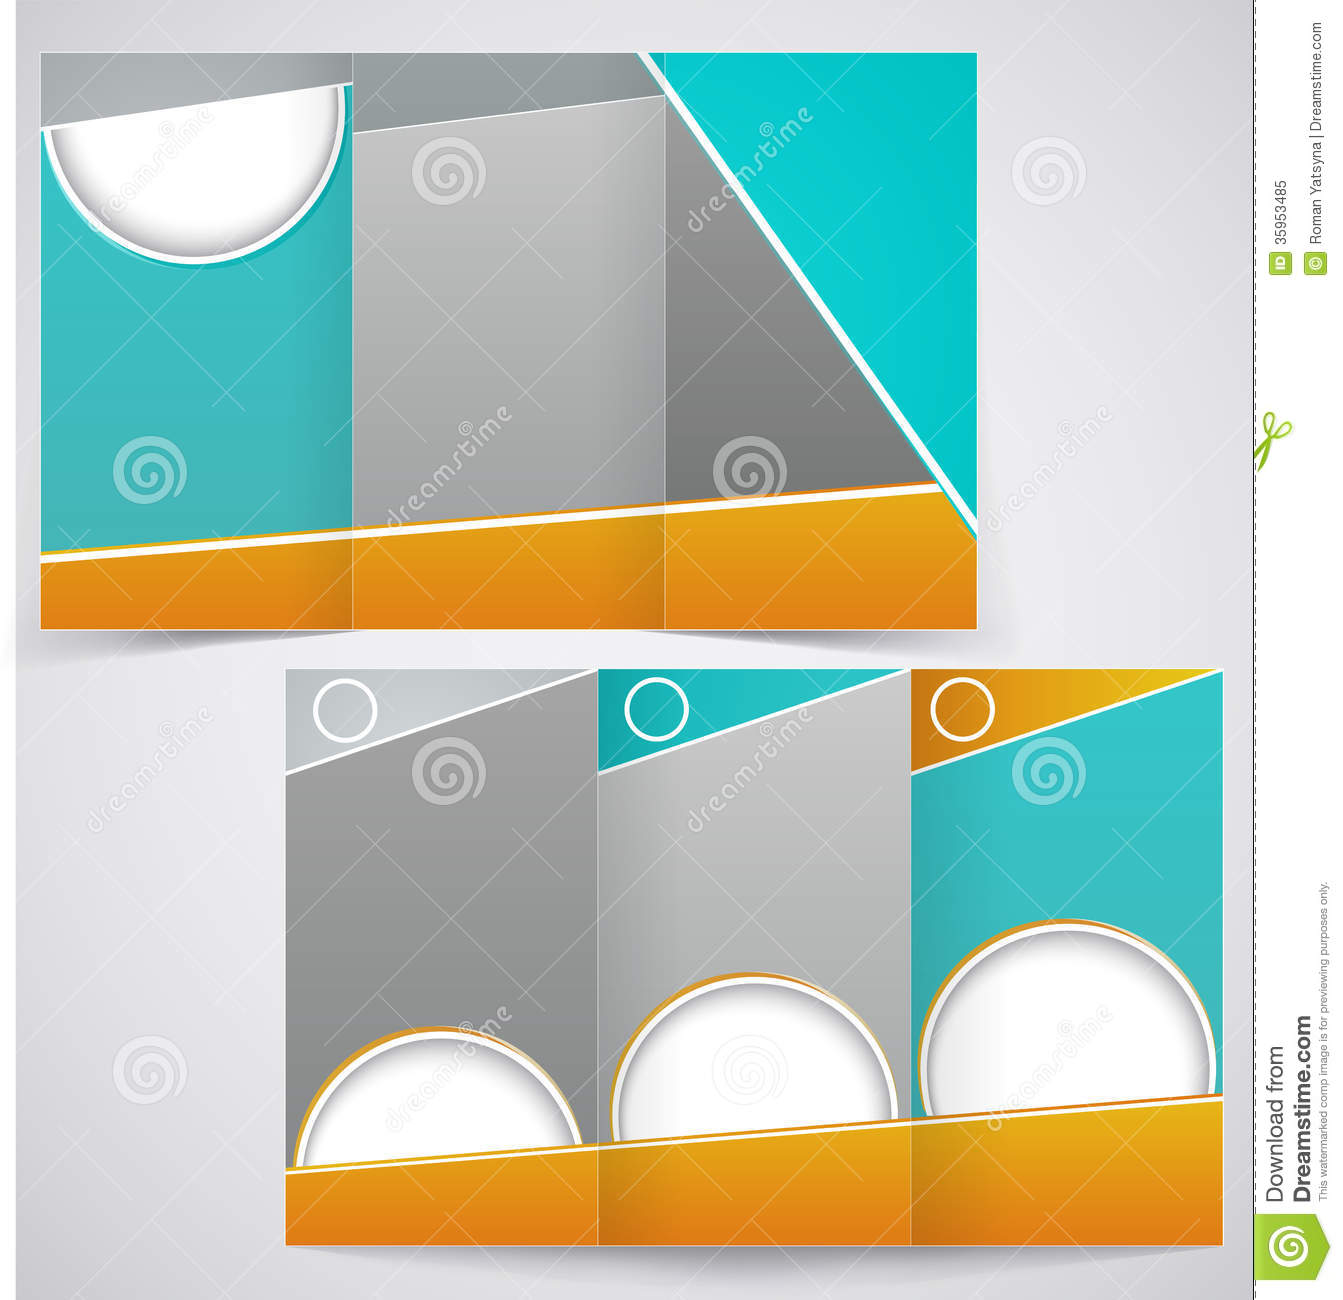 Vector brochure layout design with green and yello stock for Brochures design templates